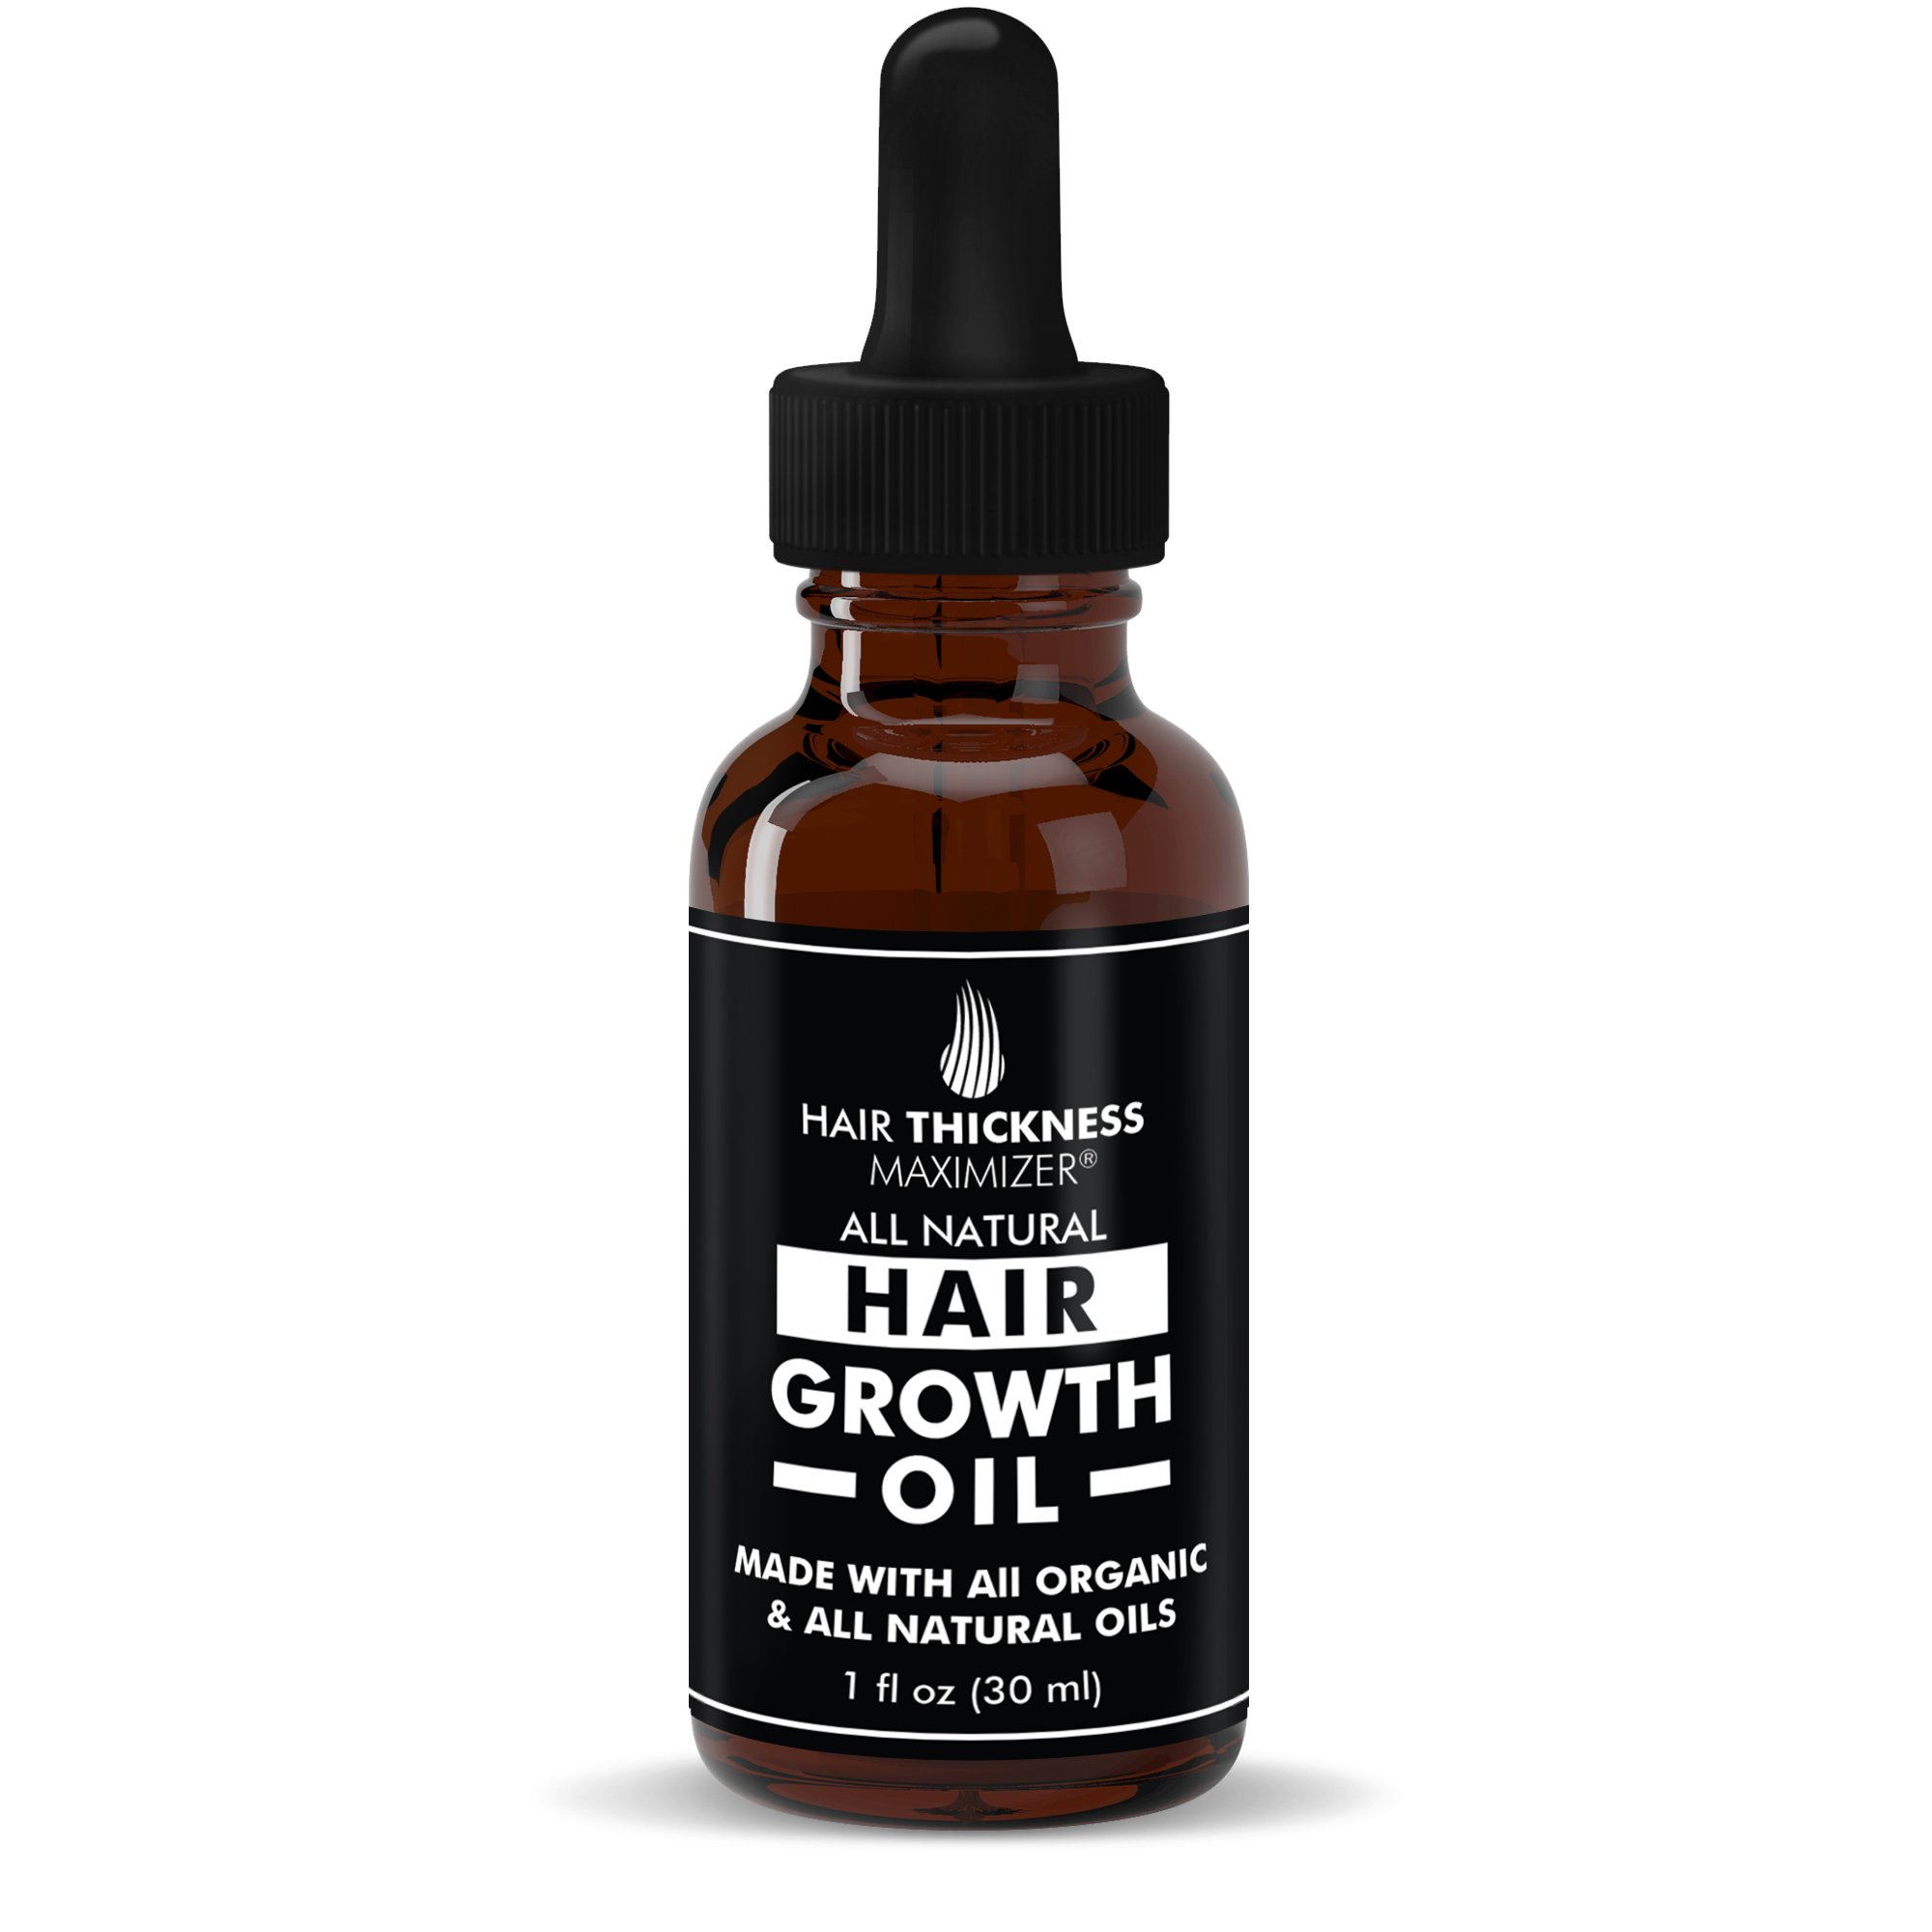 Organic Hair Growth Oils for Hair Thickening by Hair Thickness Maximizer. Best Treatment for Hair Loss, Thinning Hair. Infused with All Organic Black Castor Oil, jojoba, Argan Oil, And More